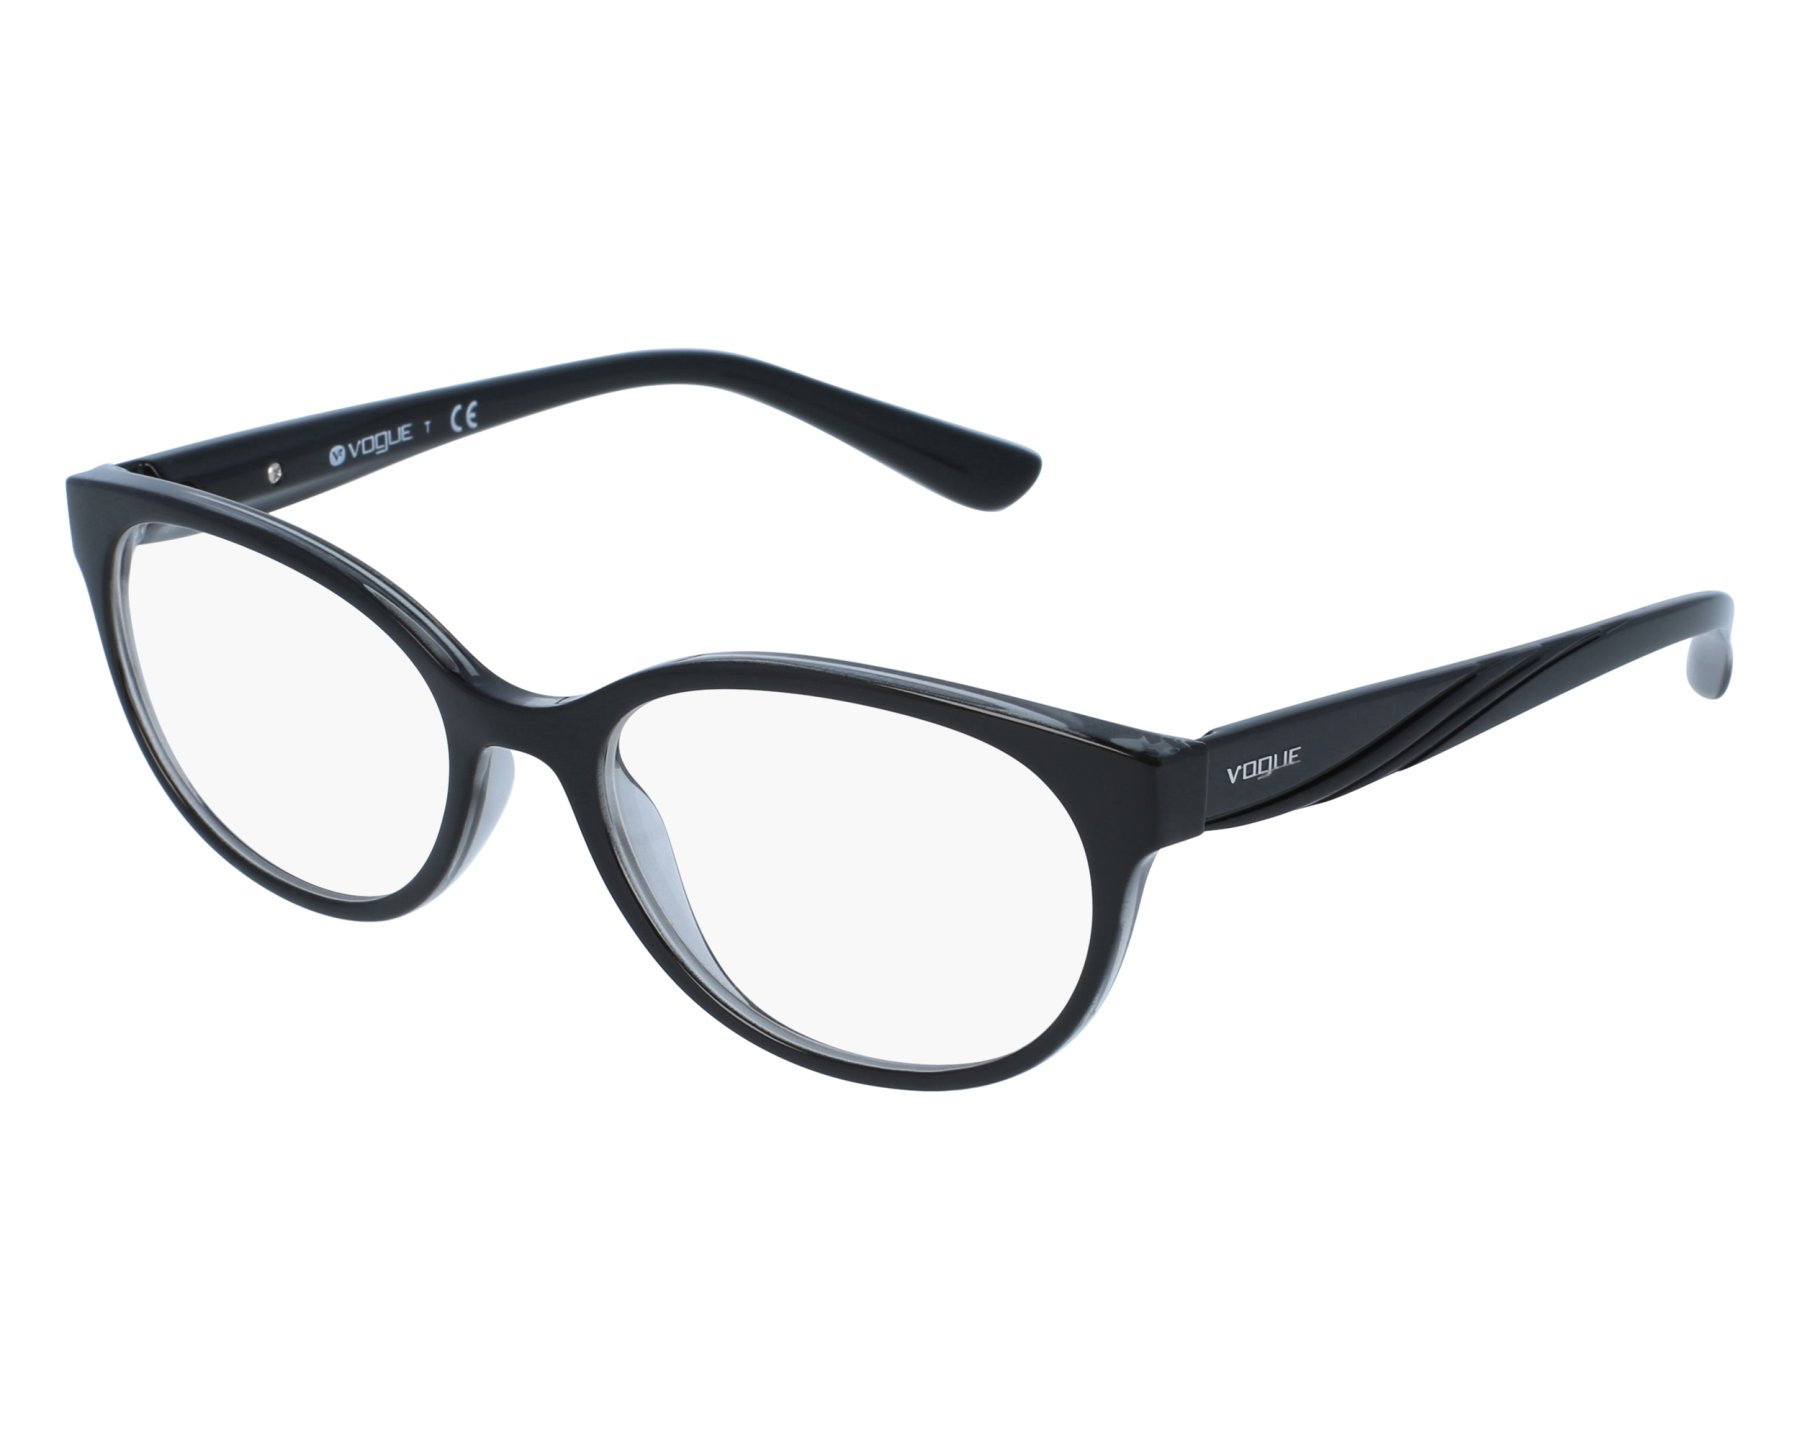 eyeglasses Vogue VO-5103 2385 51-17 Black front view